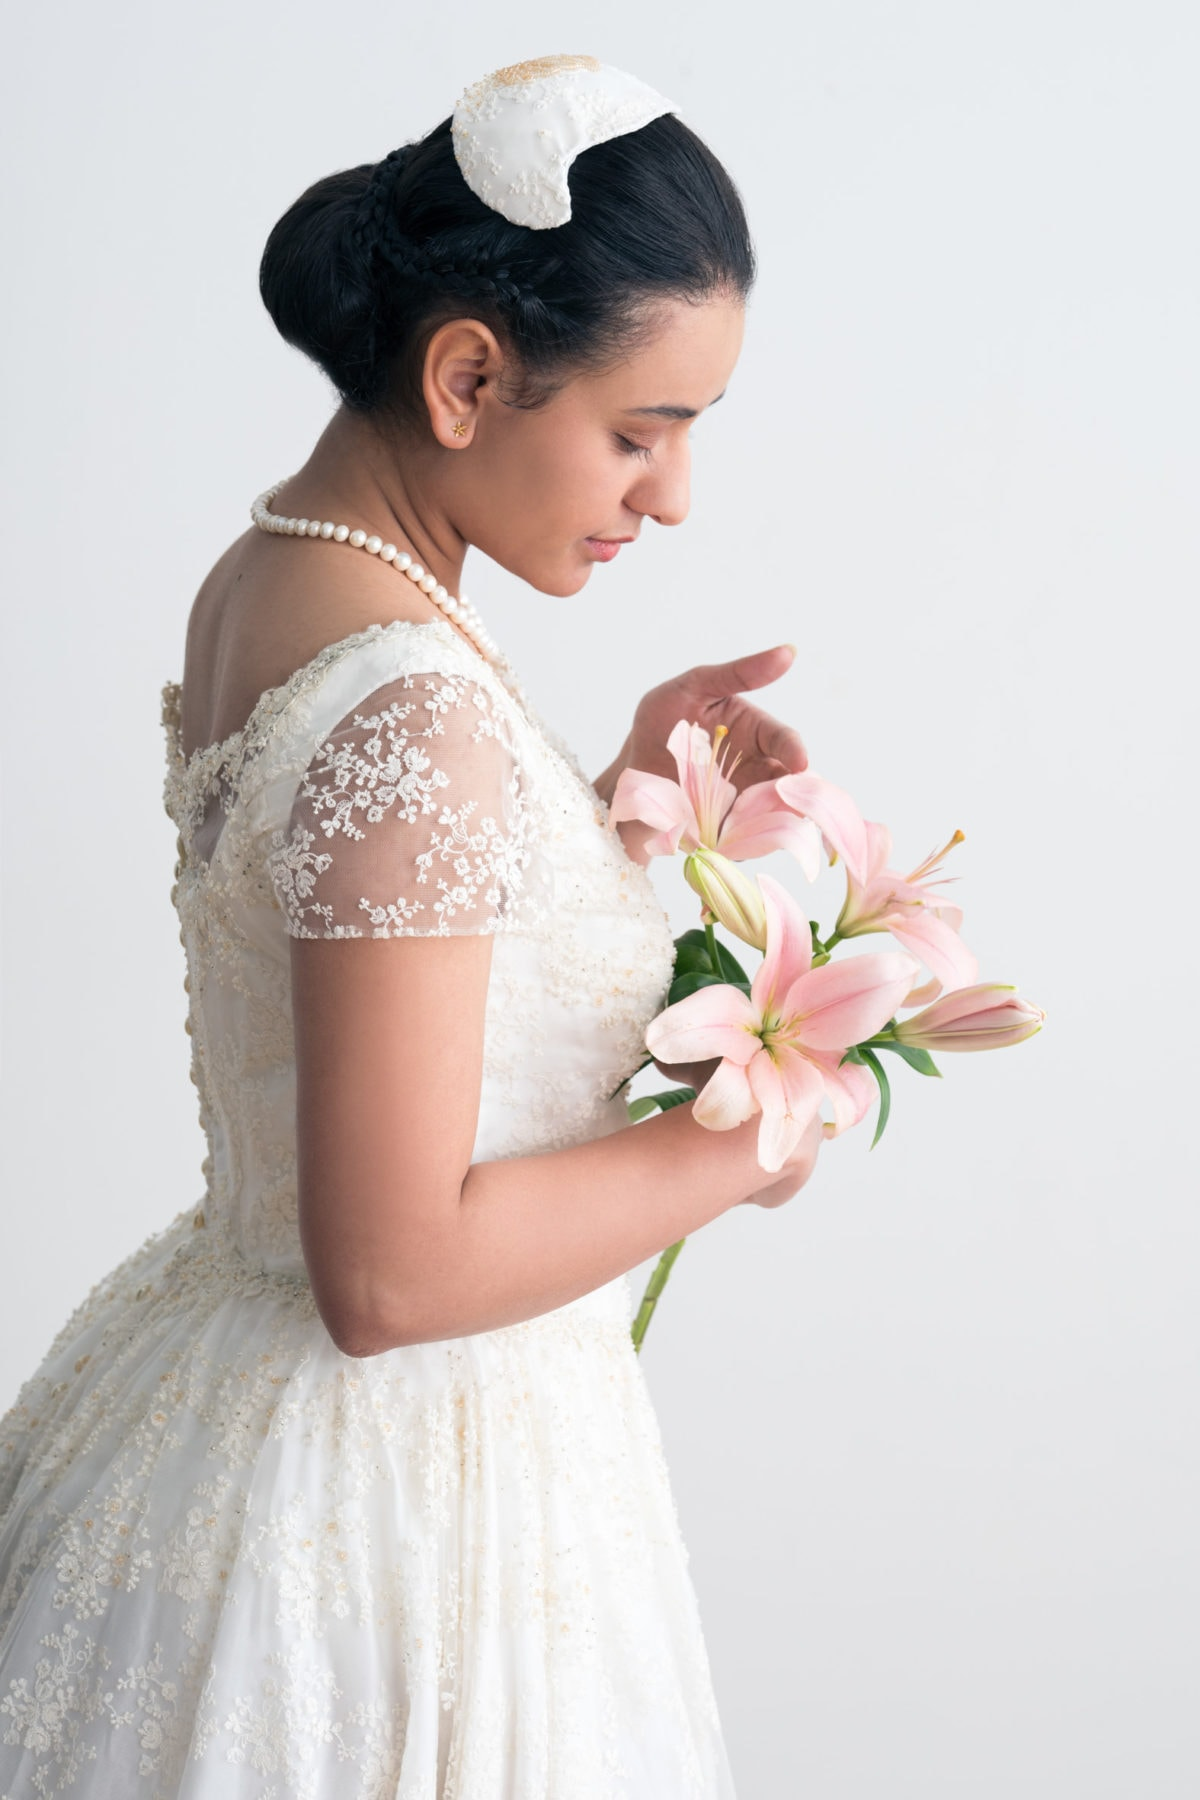 10 Most Common Wedding Dress Alterations That You Should Know About Heili Bridal,Wedding Dress Template For Card Making